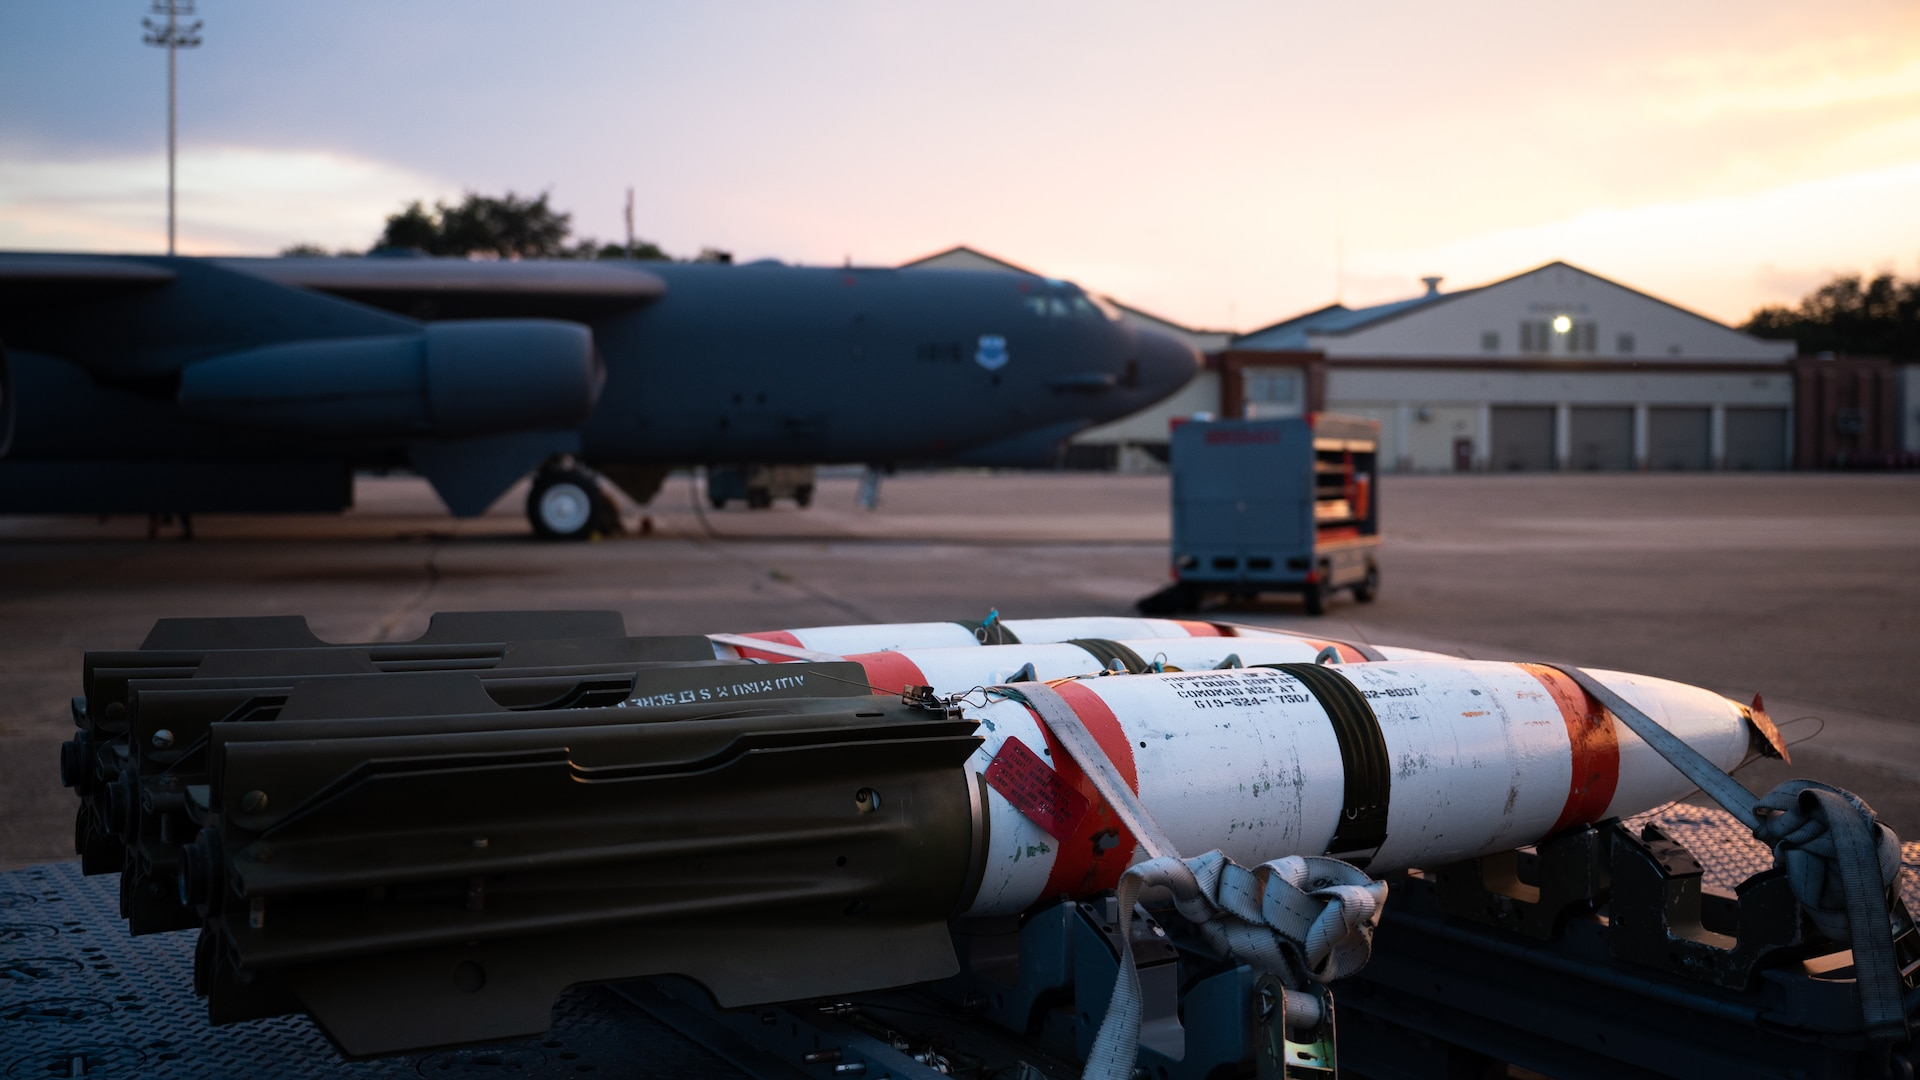 MK-62 Quickstrike naval mines sit in front of a B-52H Stratofortress at Barksdale Air Force Base, Louisiana, Aug. 25, 2021. The B-52 has the ability to carry and employ naval mines, as well as conventional and nuclear weapons. (U.S. Air Force photo by Senior Airman Jacob B. Wrightsman)